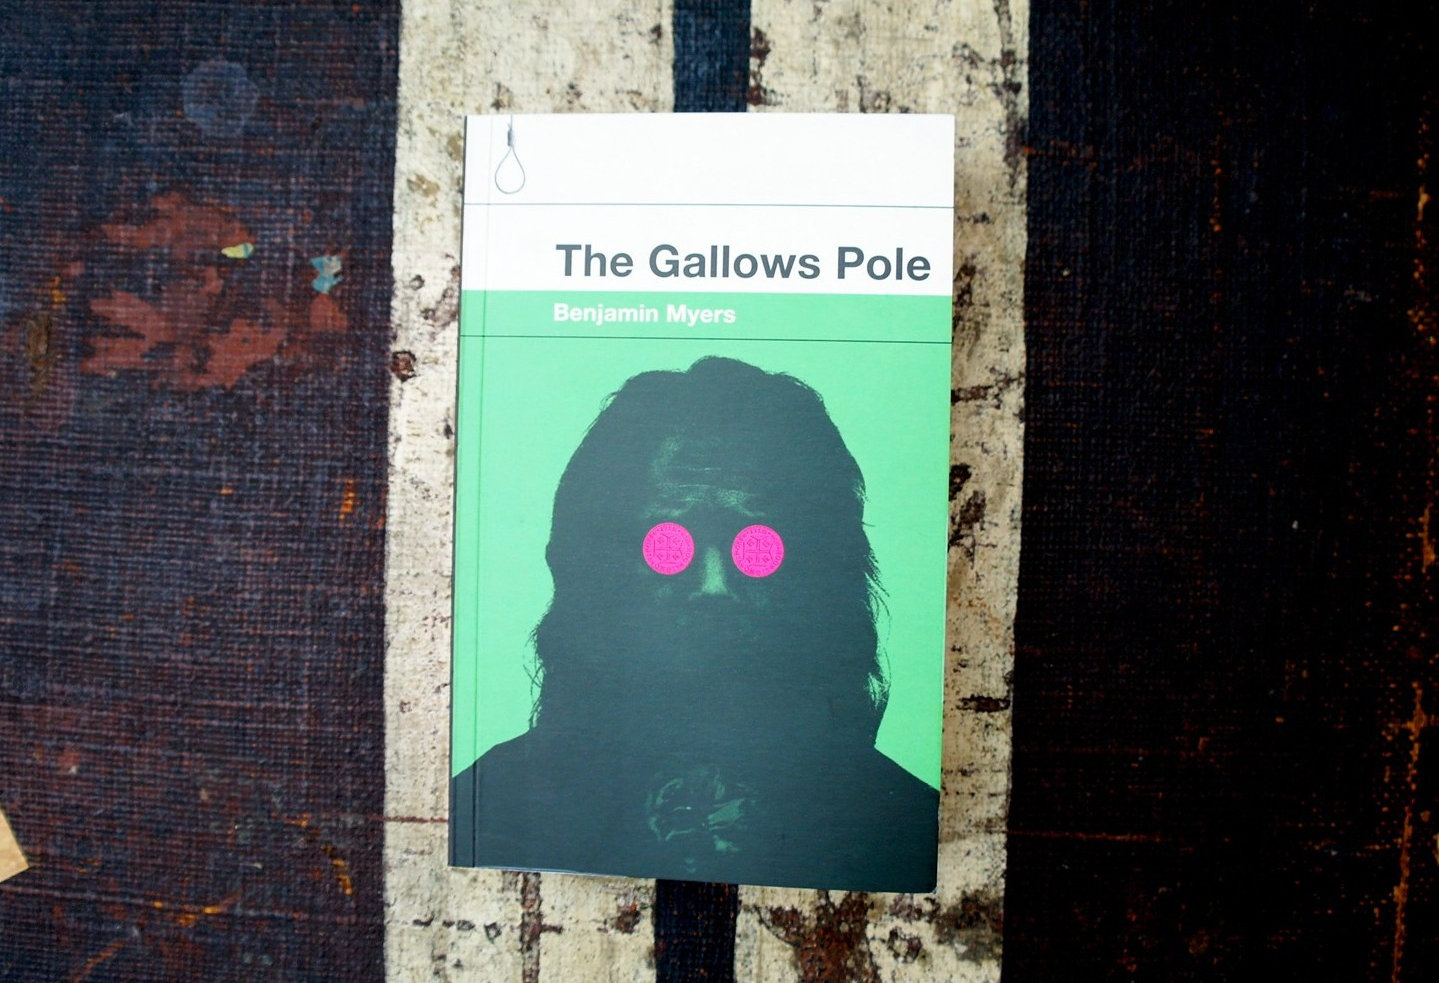 Book review of The Gallows Pole